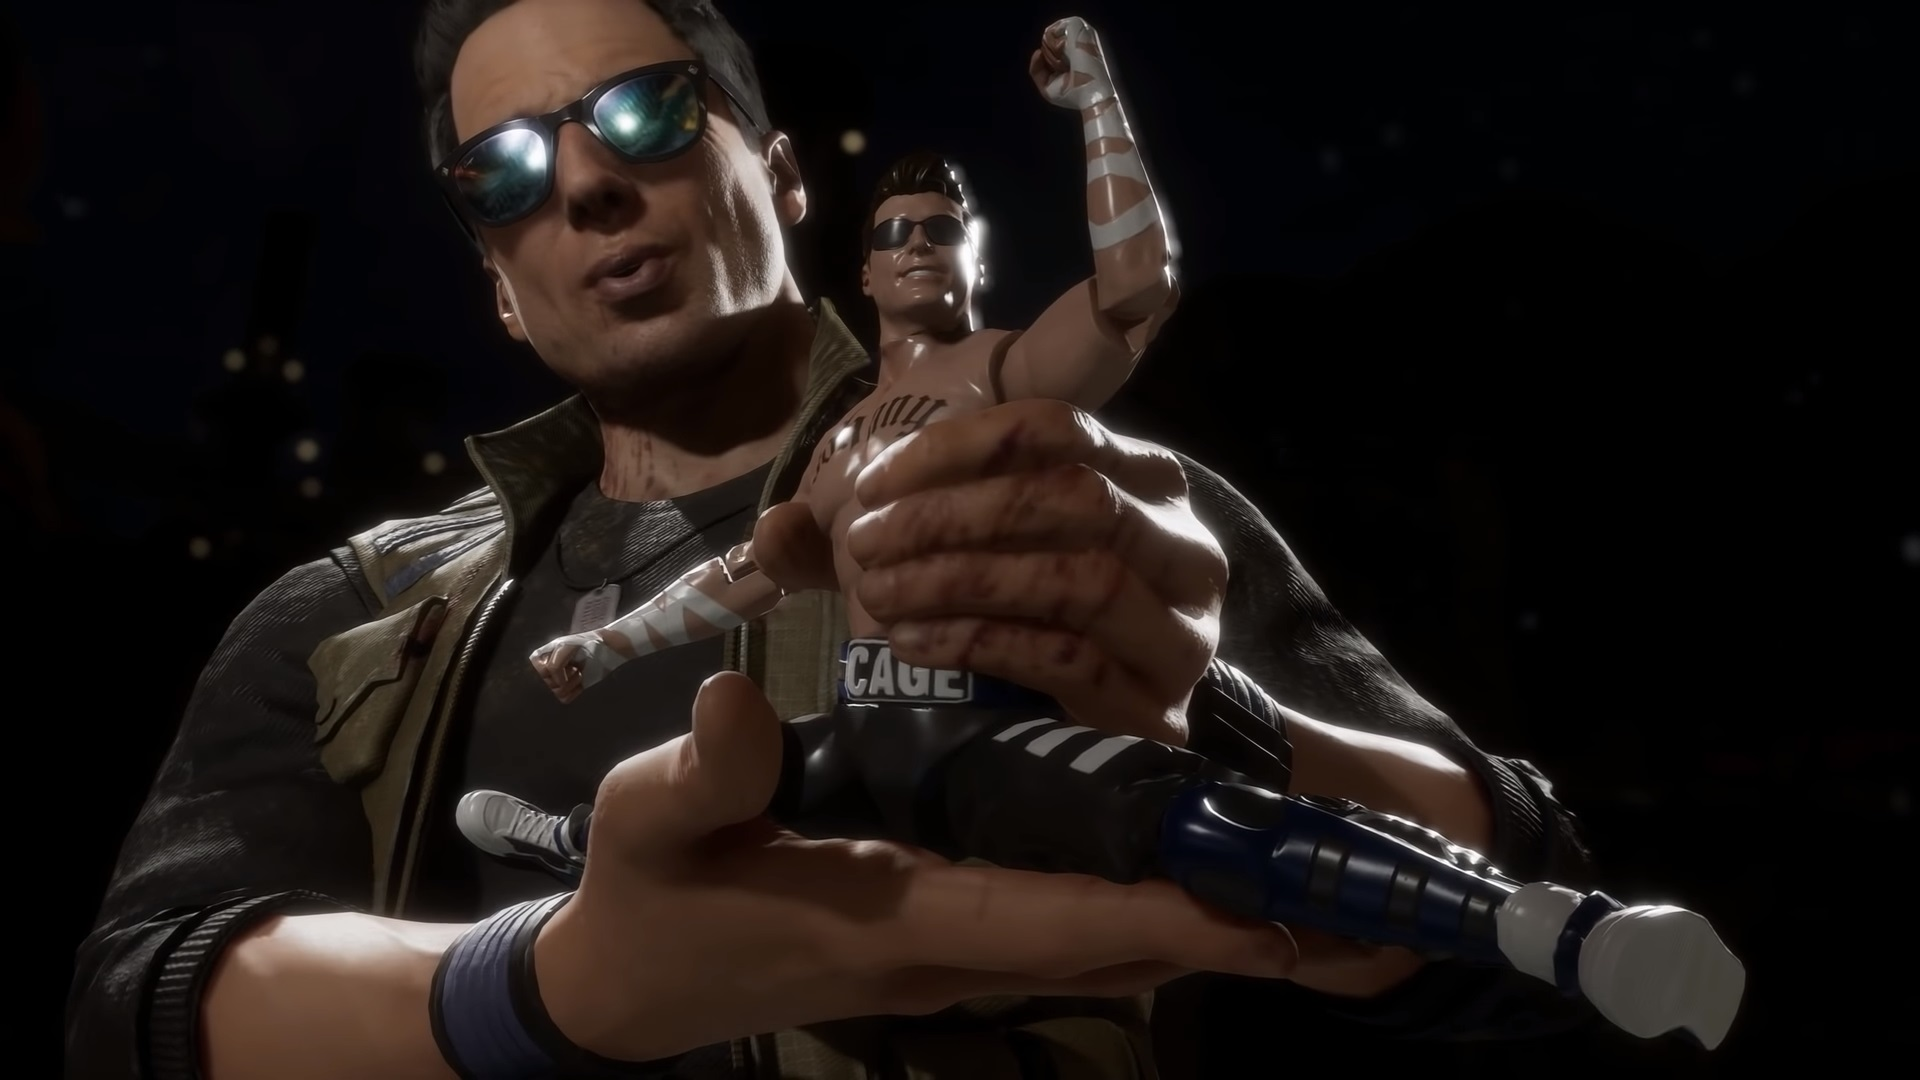 Johnny Cage Mortal Kombat 11 Fatalities Guide